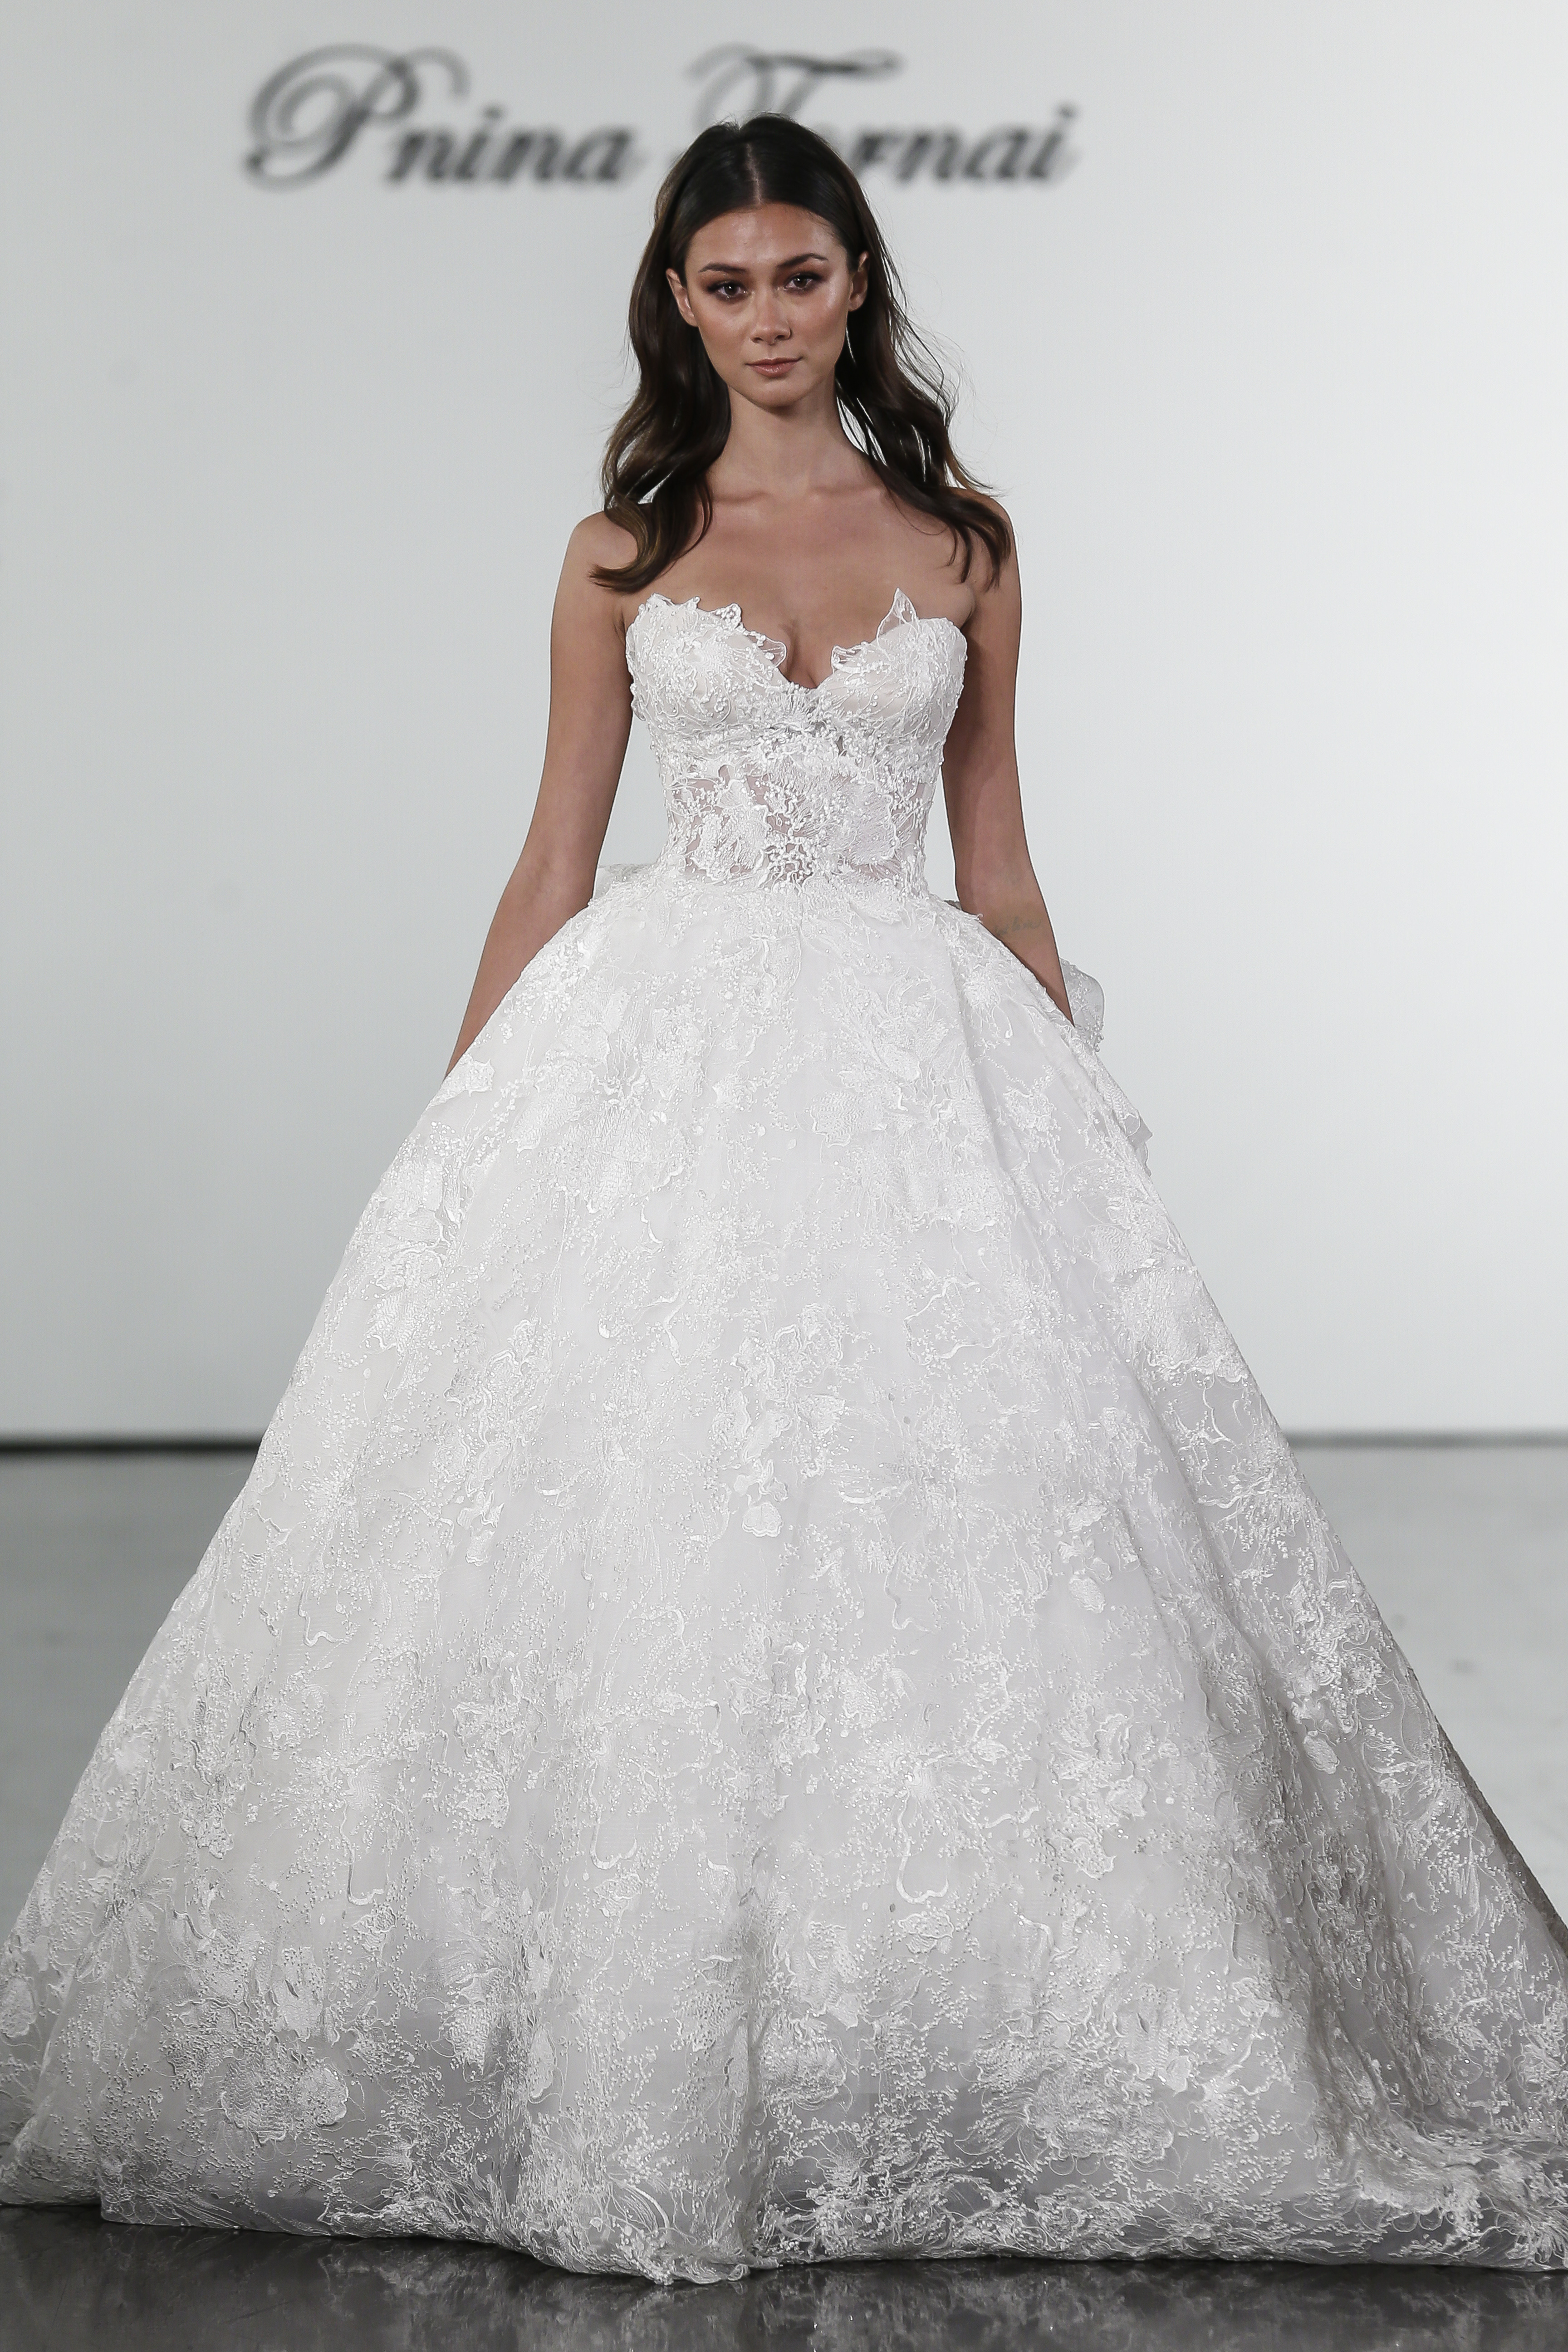 Floral Lace Sweetheart Ball Gown Wedding Dress